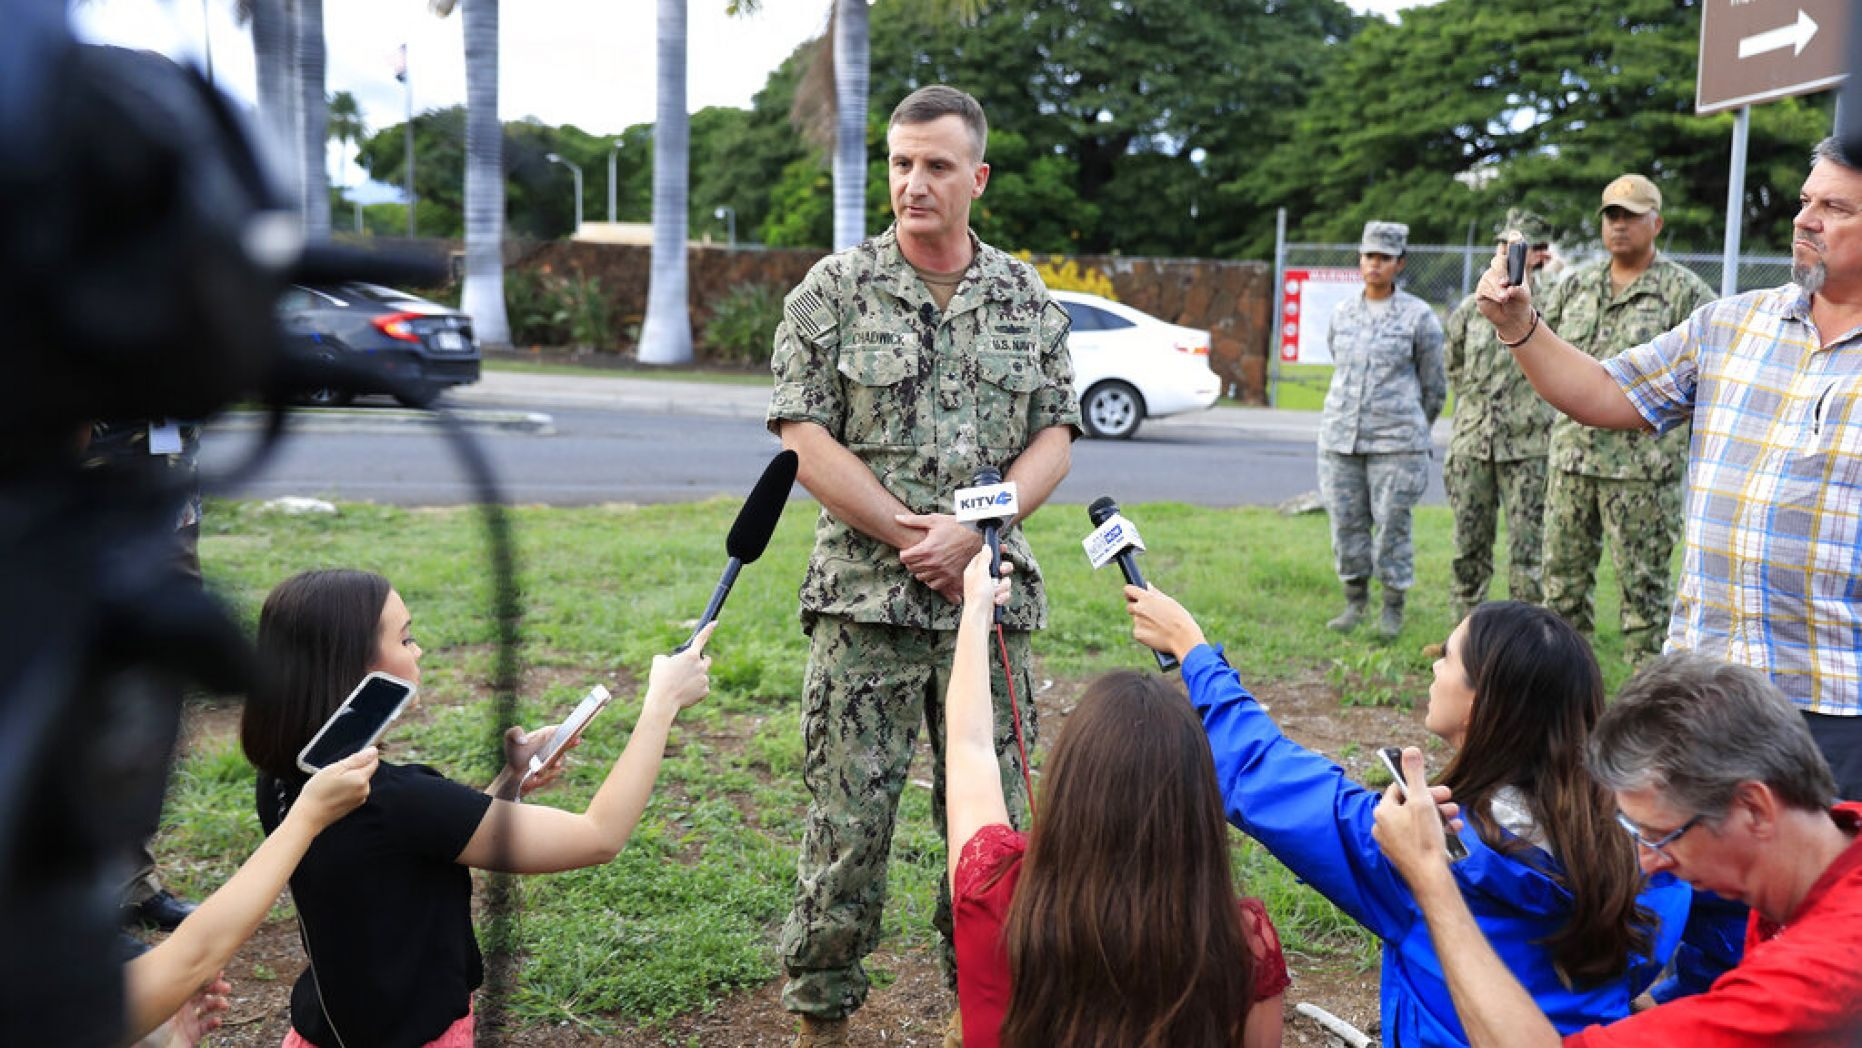 U.S. Navy Rear Adm. Robb Chadwick speaks to the media at the main gate at Joint Base Pearl Harbor-Hickam, Wednesday, Dec. 4, 2019, in Hawaii, following a shooting.